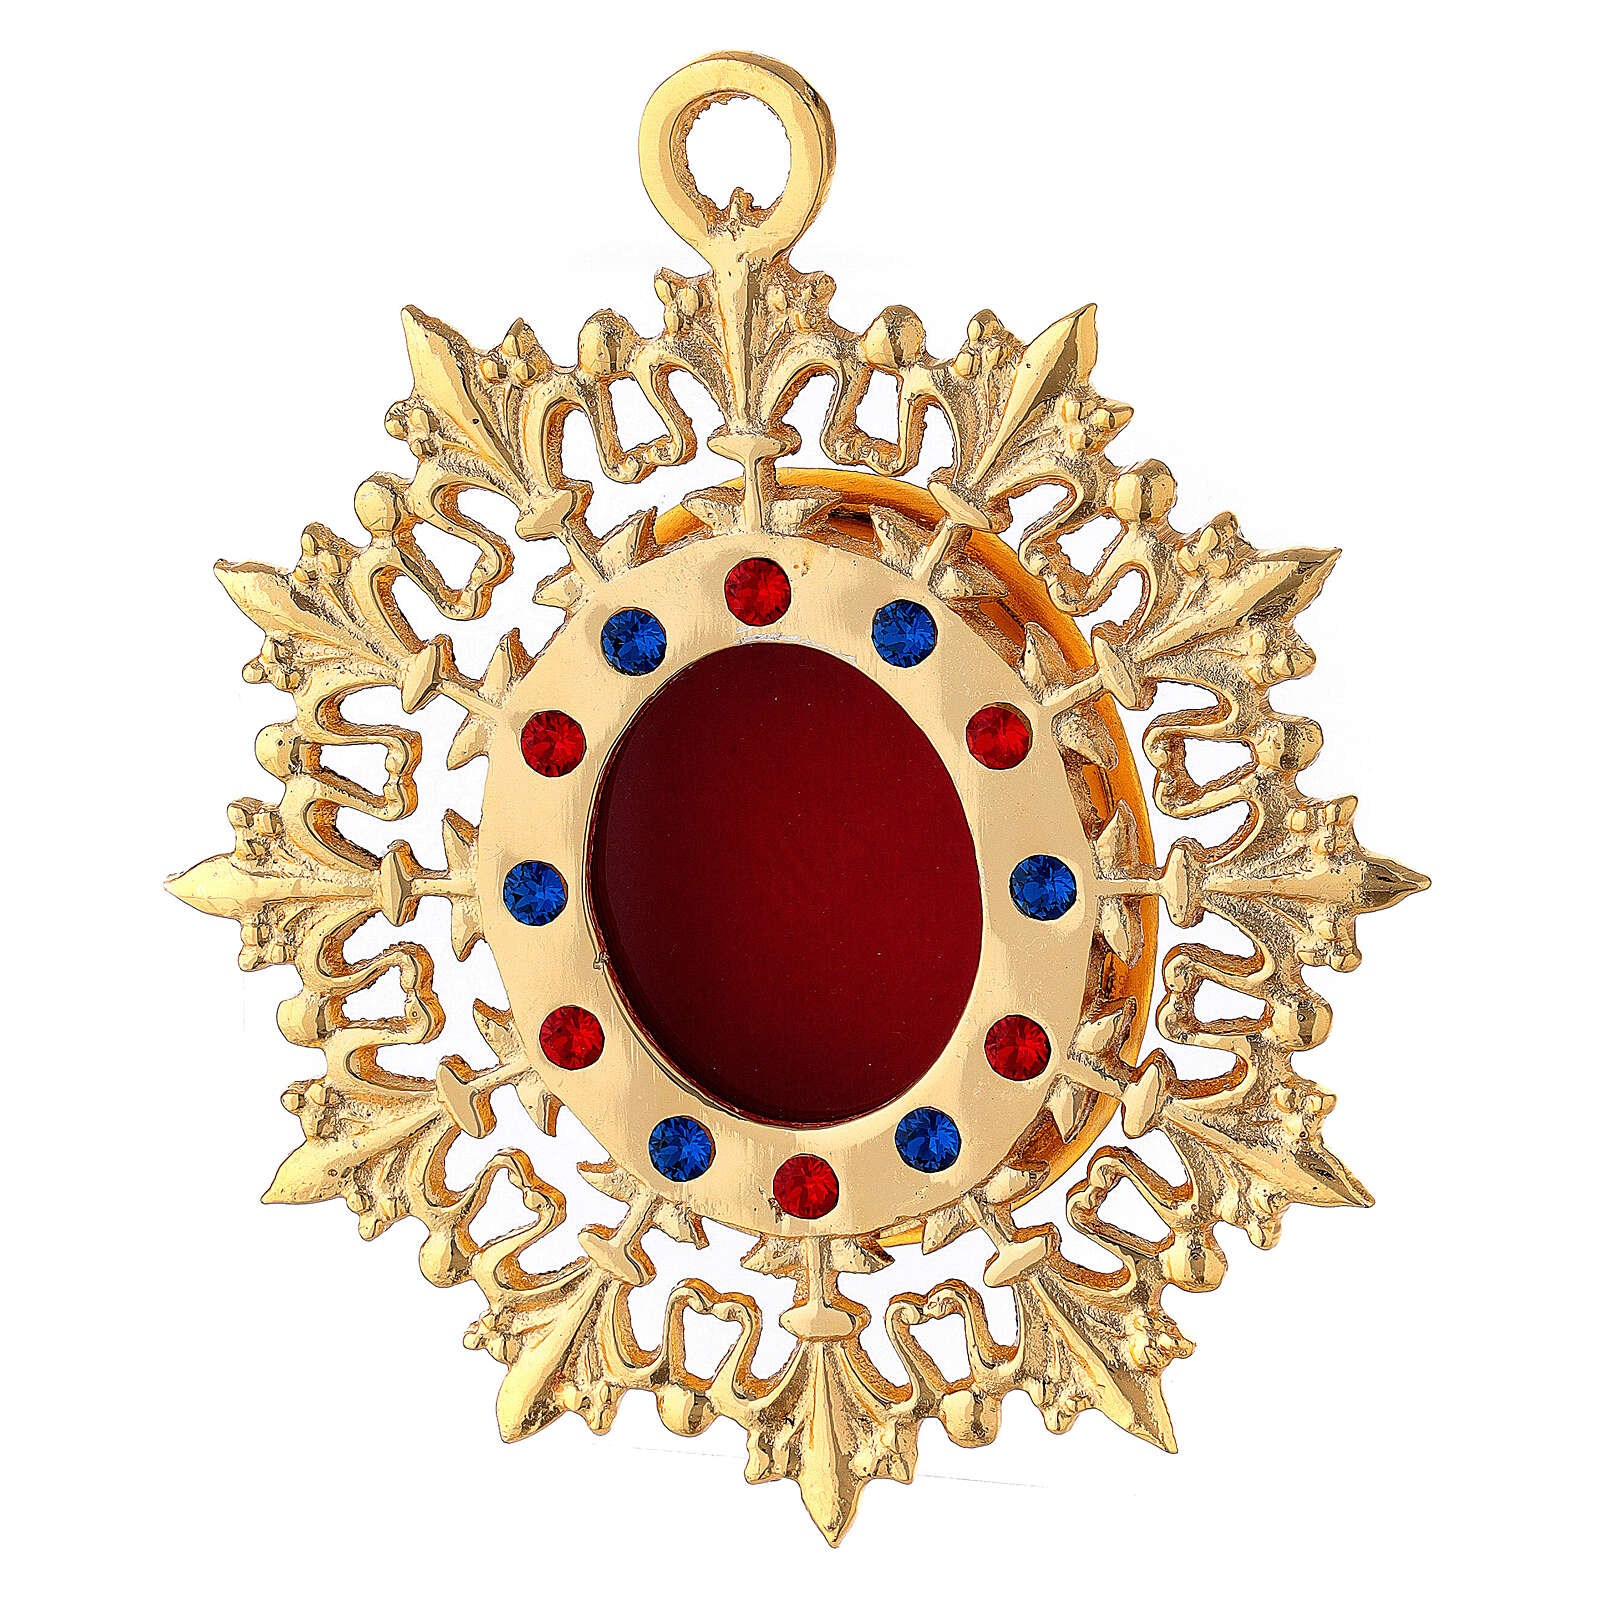 Wall reliquary sunburst design gold plated brass and crystals 4